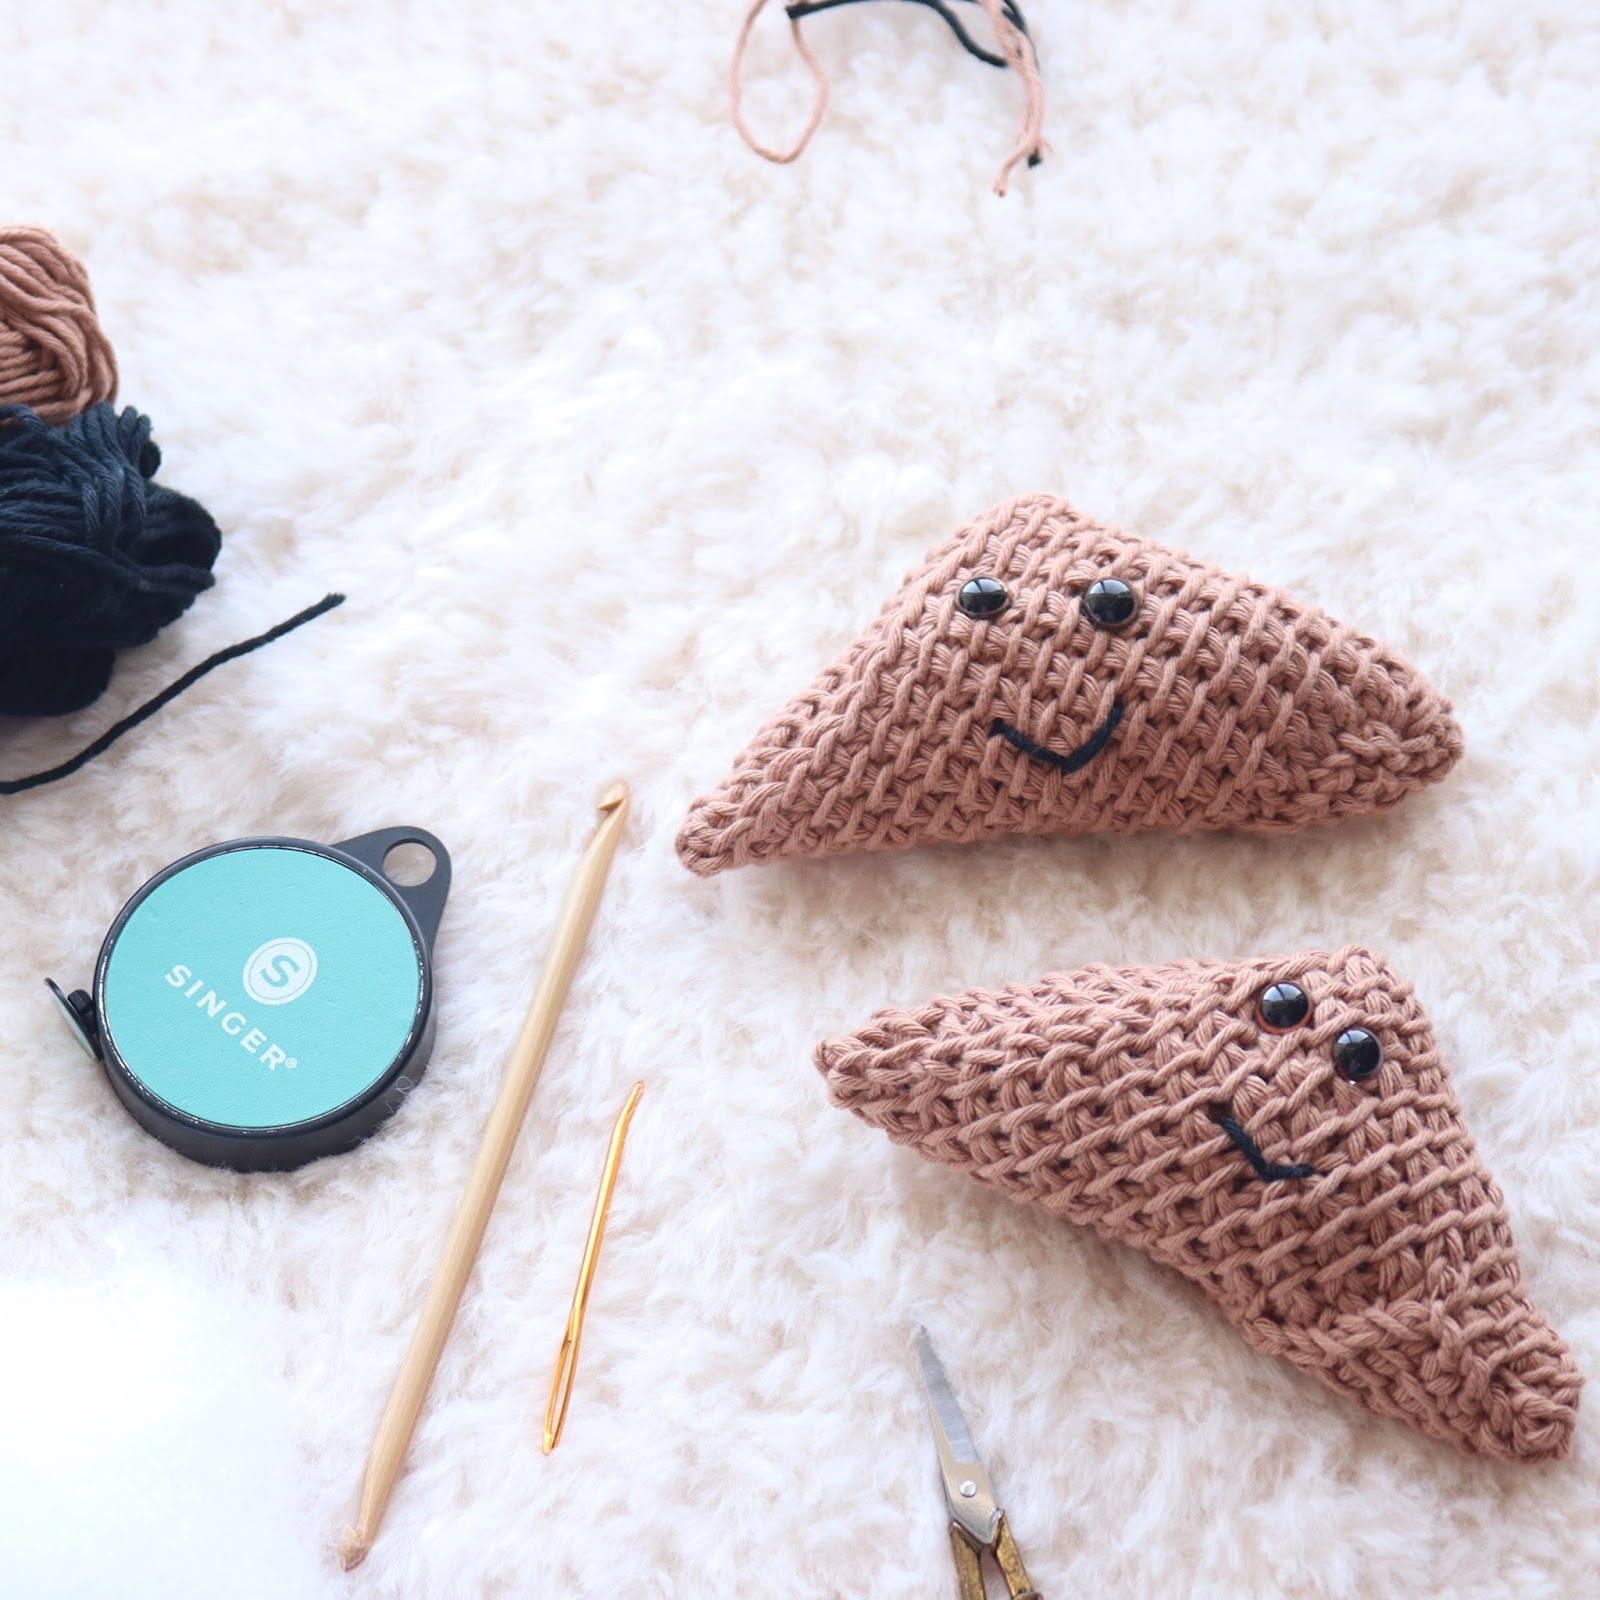 Looking for a free crochet food patterns?! Try your hand at this cute Tunisian crochet Samosa pattern with a full video tutorial!